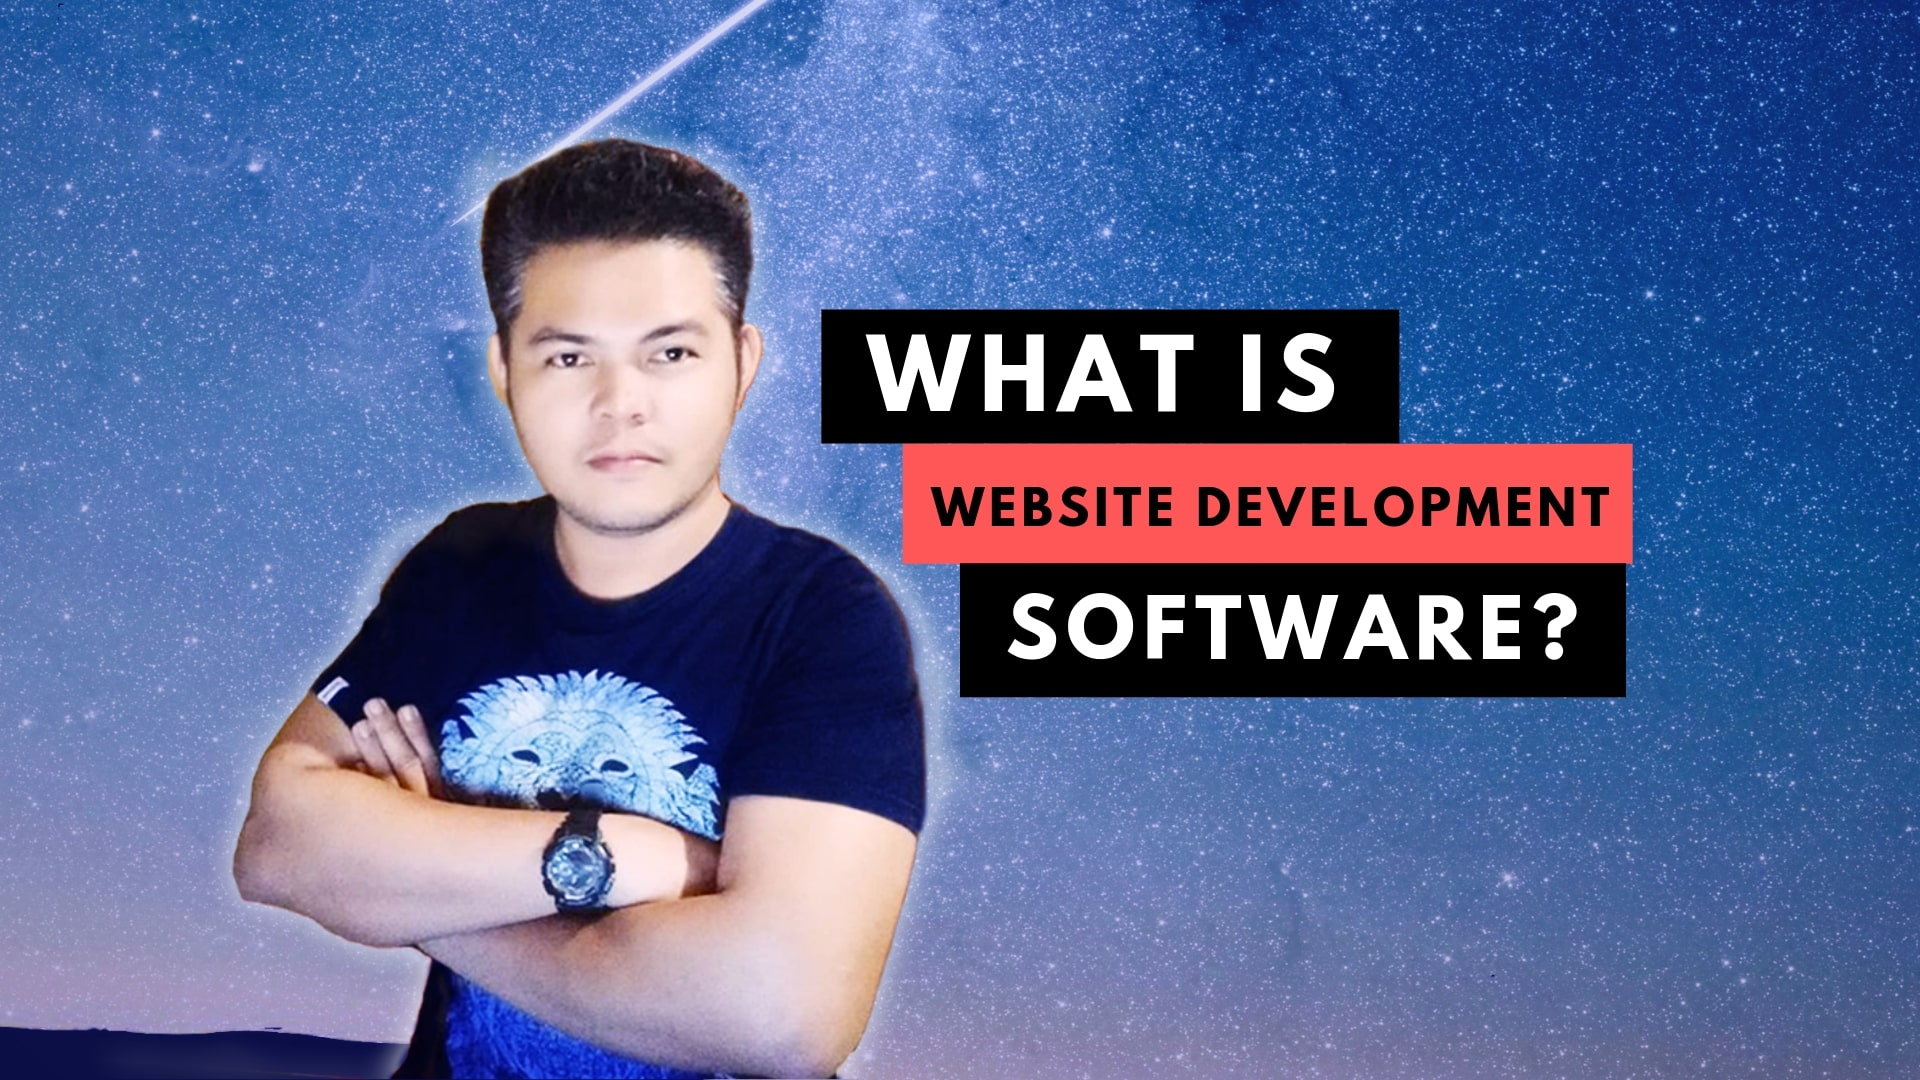 WHAT IS WEBSITE DEVELOPMENT SOFTWARE?